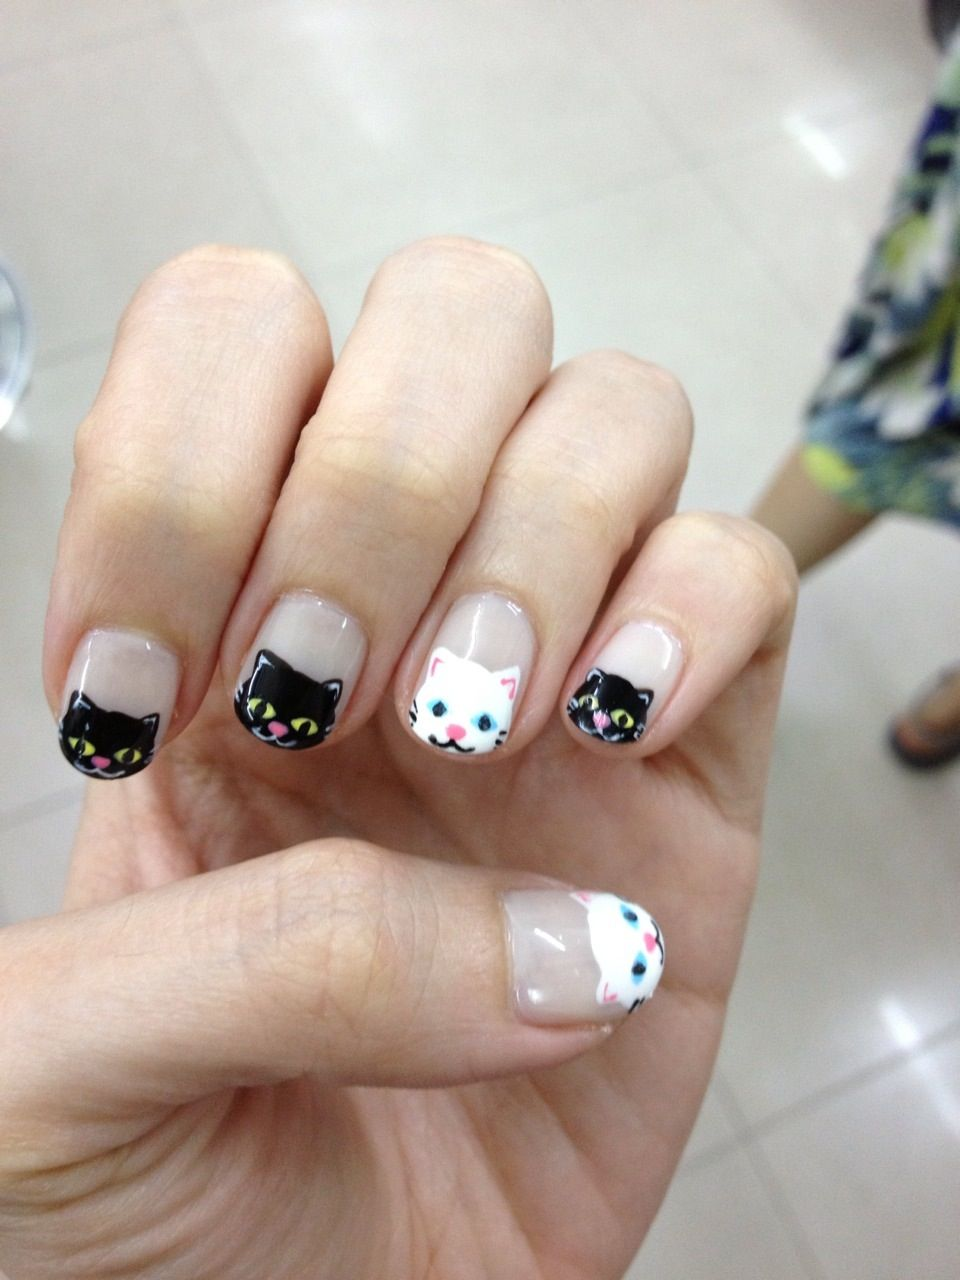 cat nails Marketing for Nail Technicians http://www.nailtechsuccess.com/ - Cat Nails Marketing For Nail Technicians Http://www